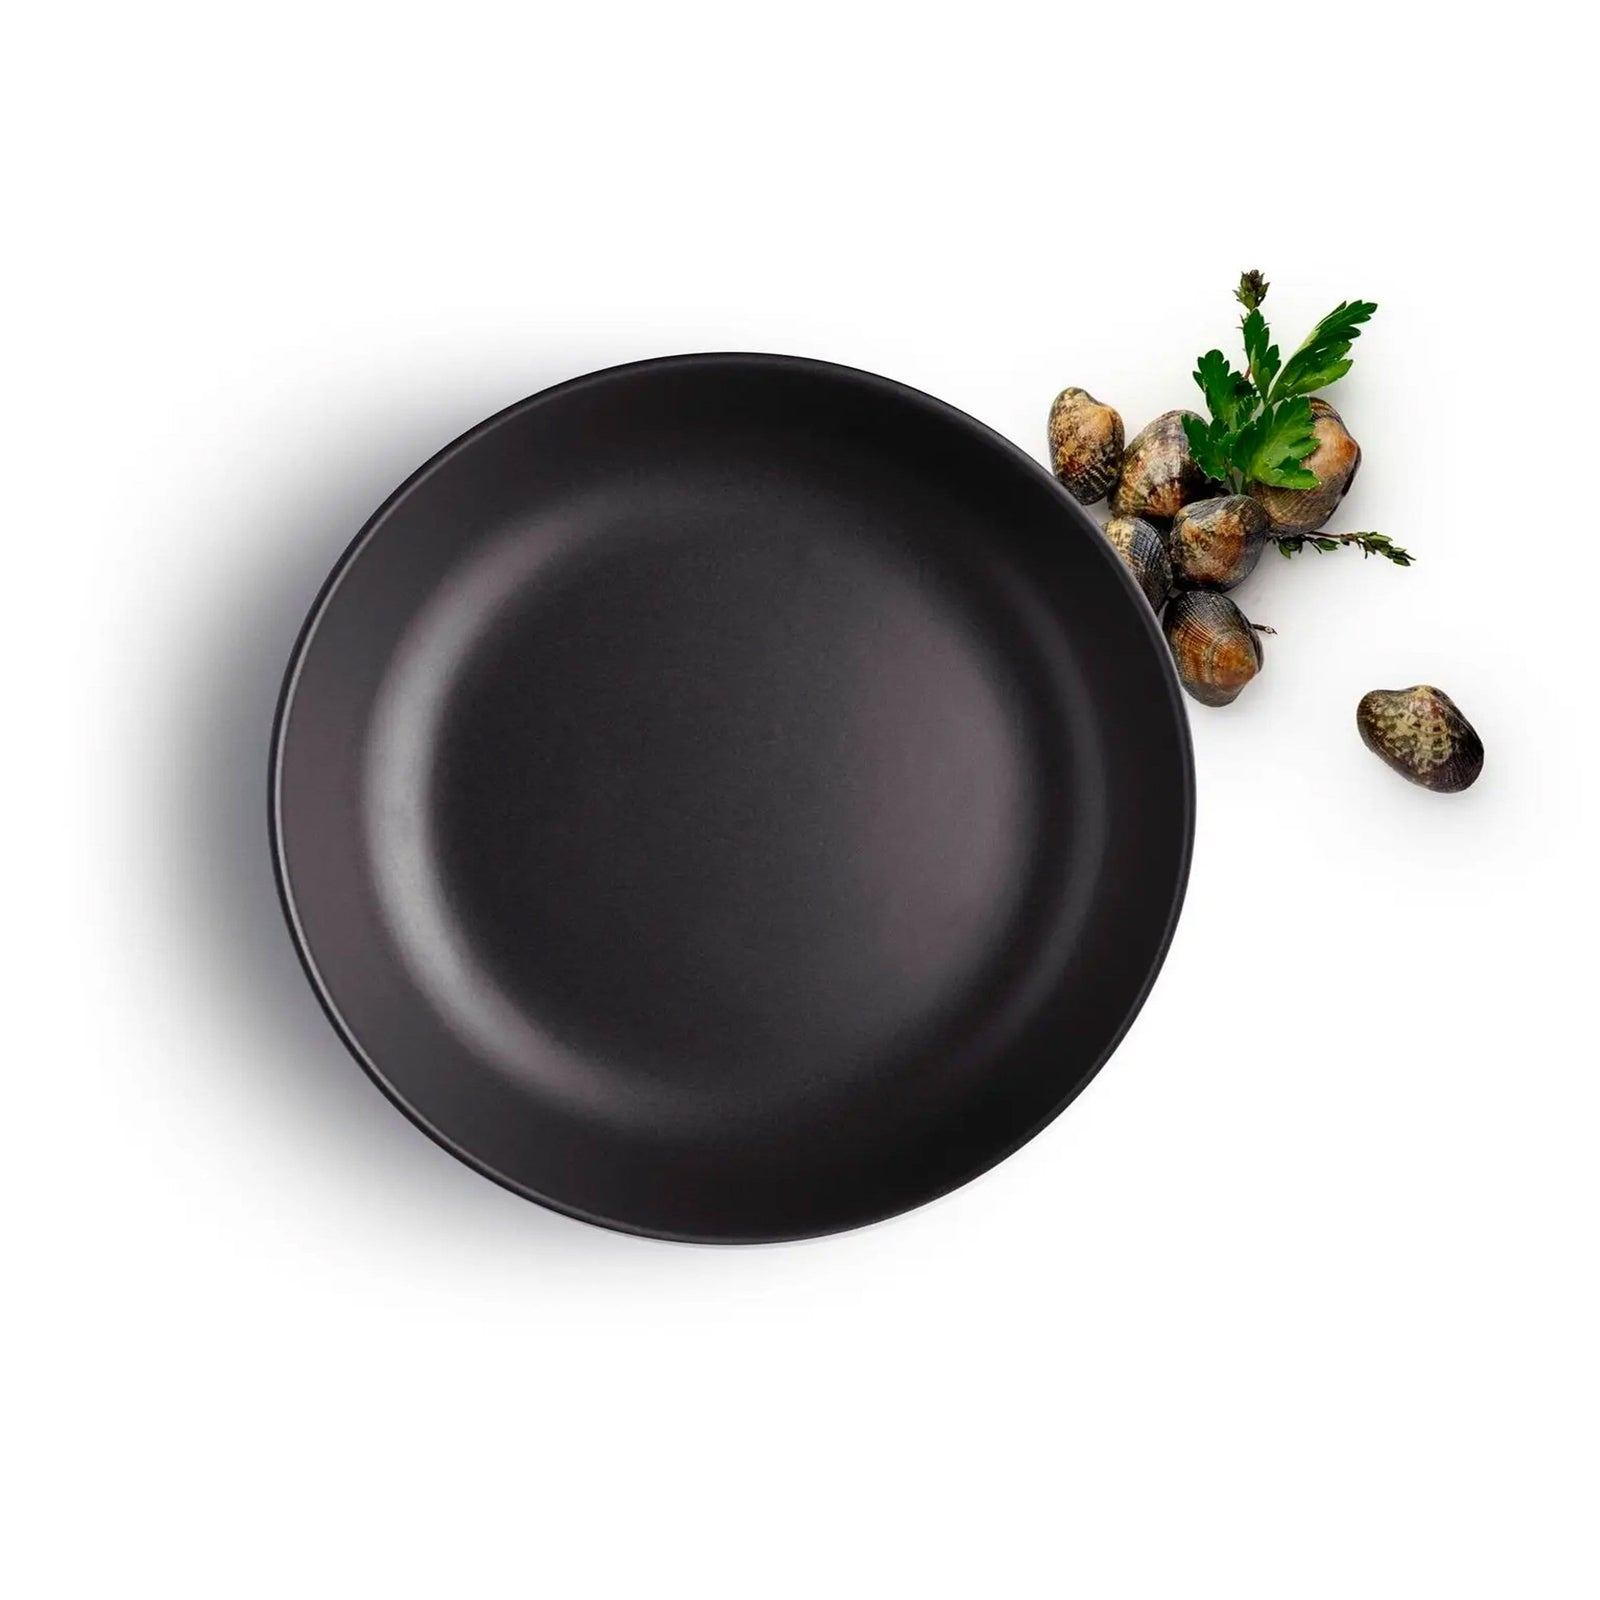 Eva Solo Kitchenware Nordic Kitchen Porcelain Deep Plates